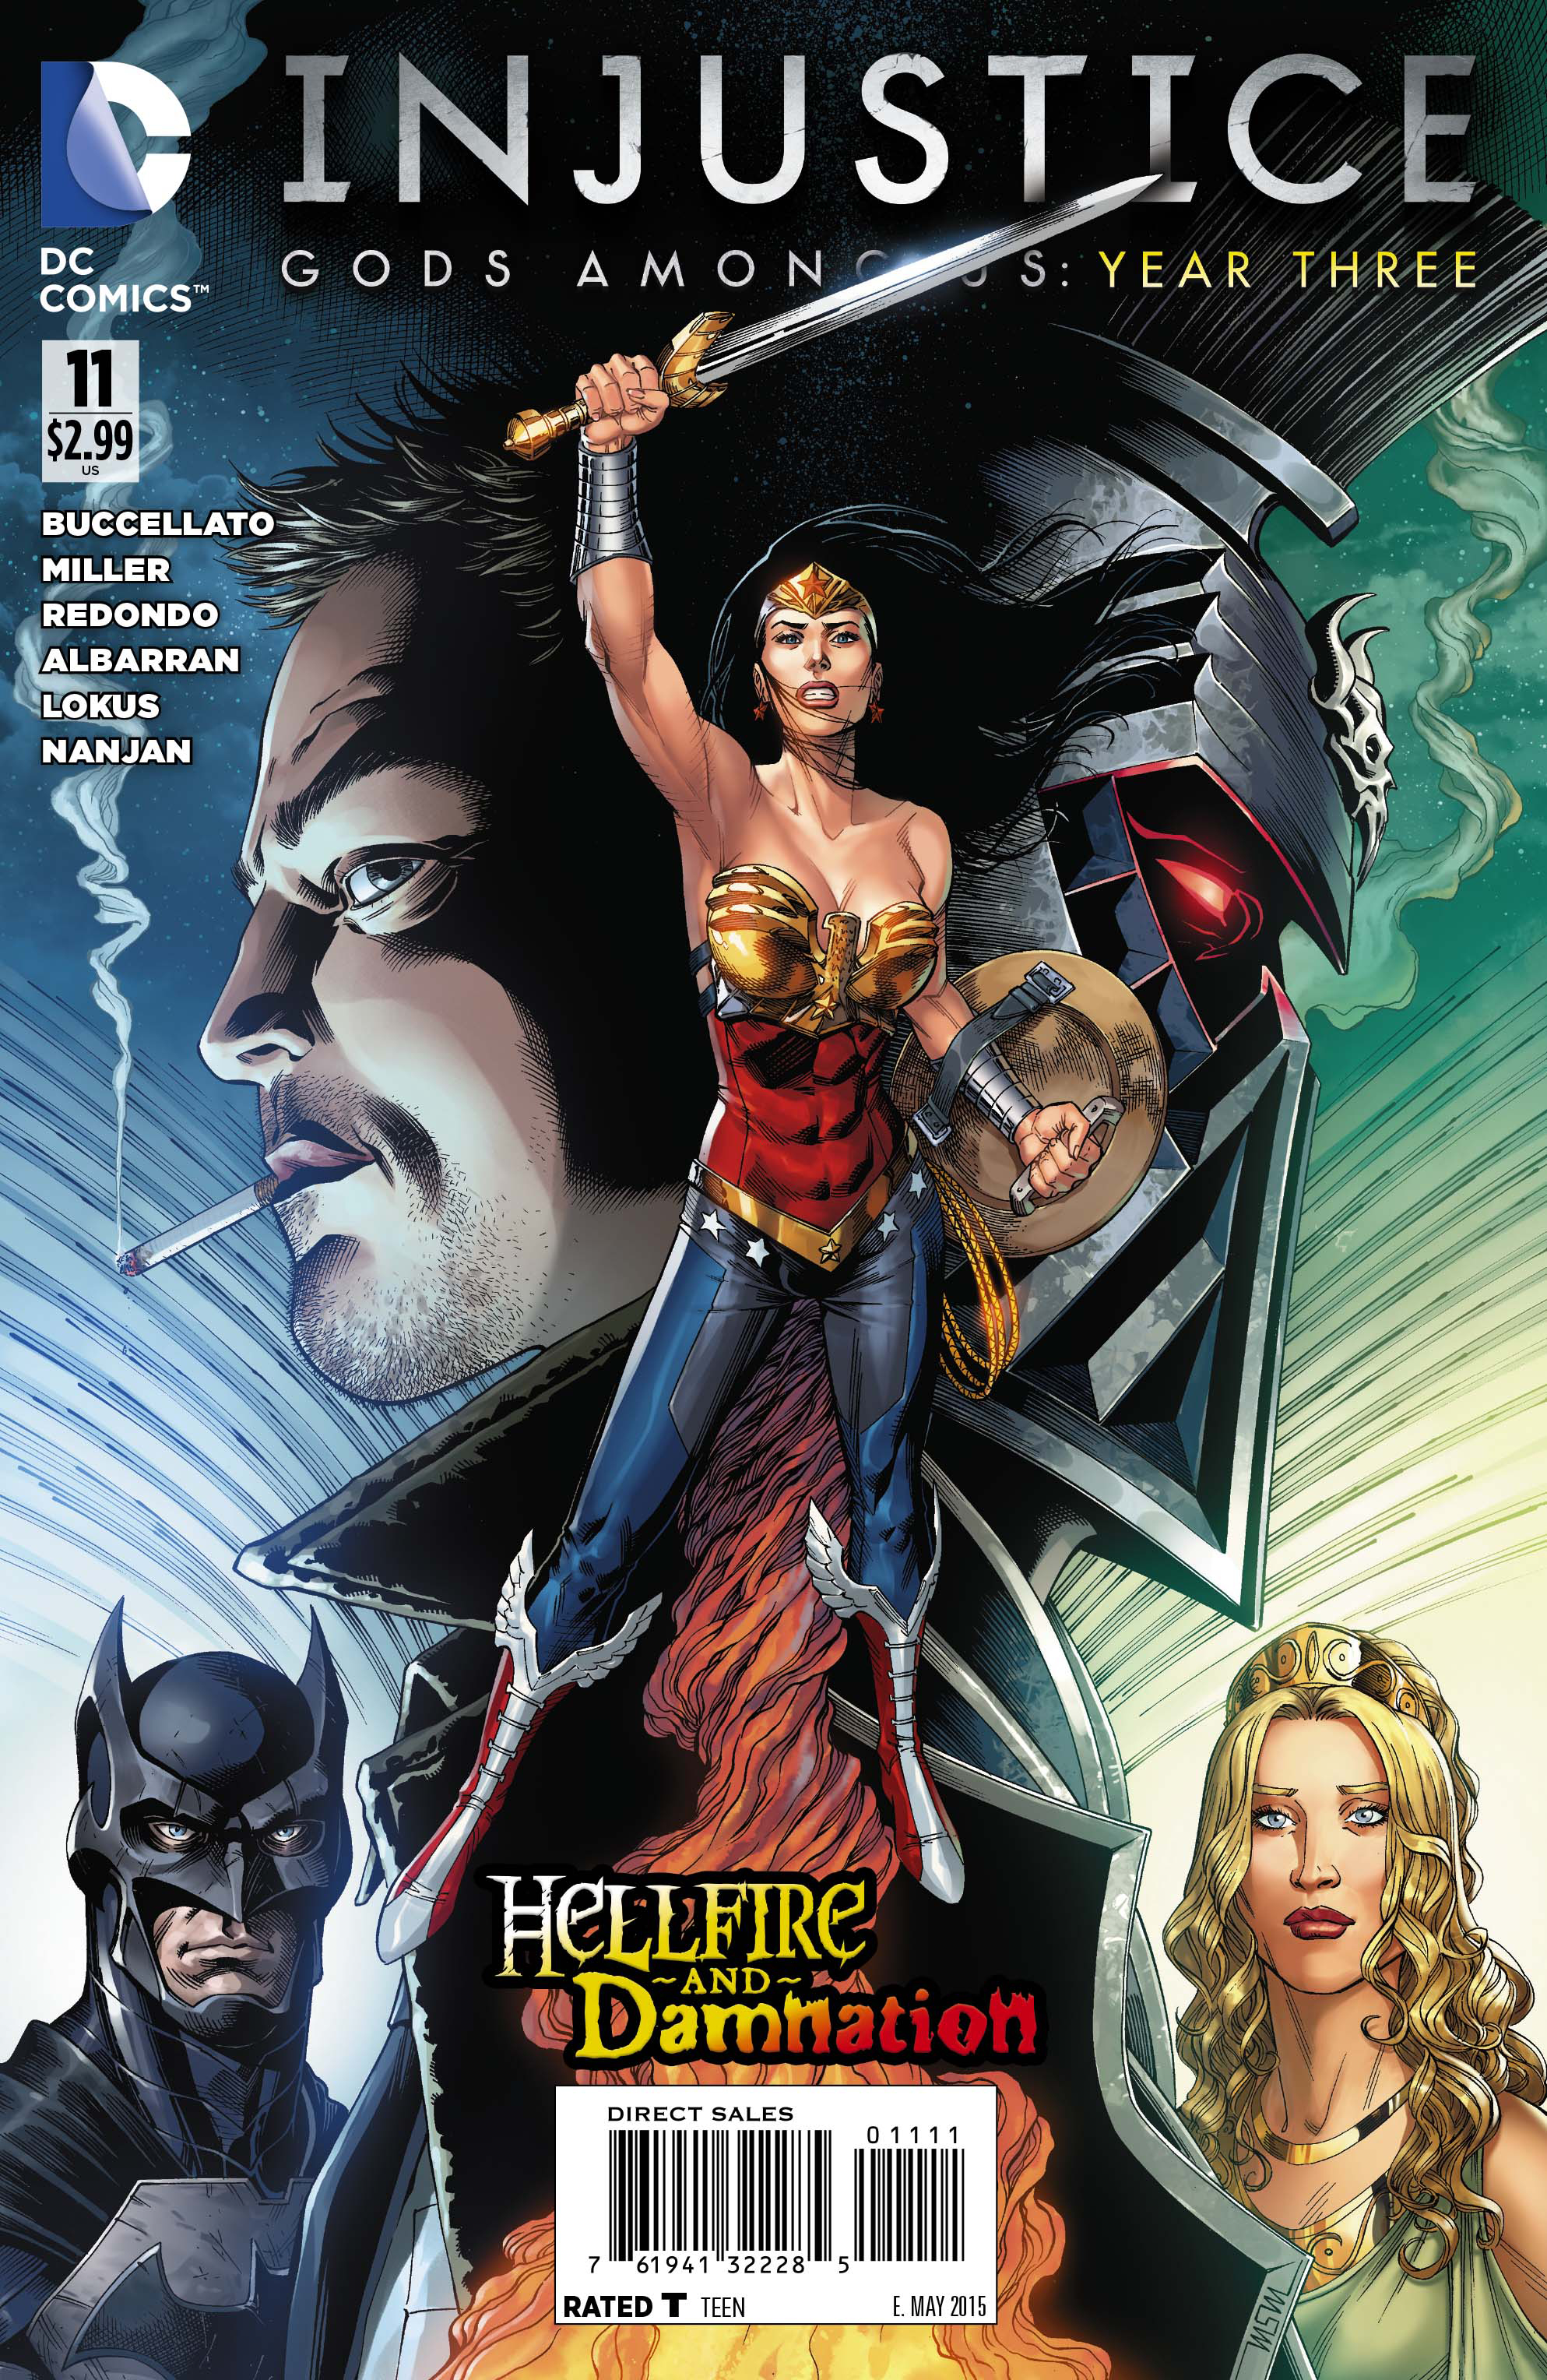 INJUSTICE GODS AMONG US YEAR THREE #11